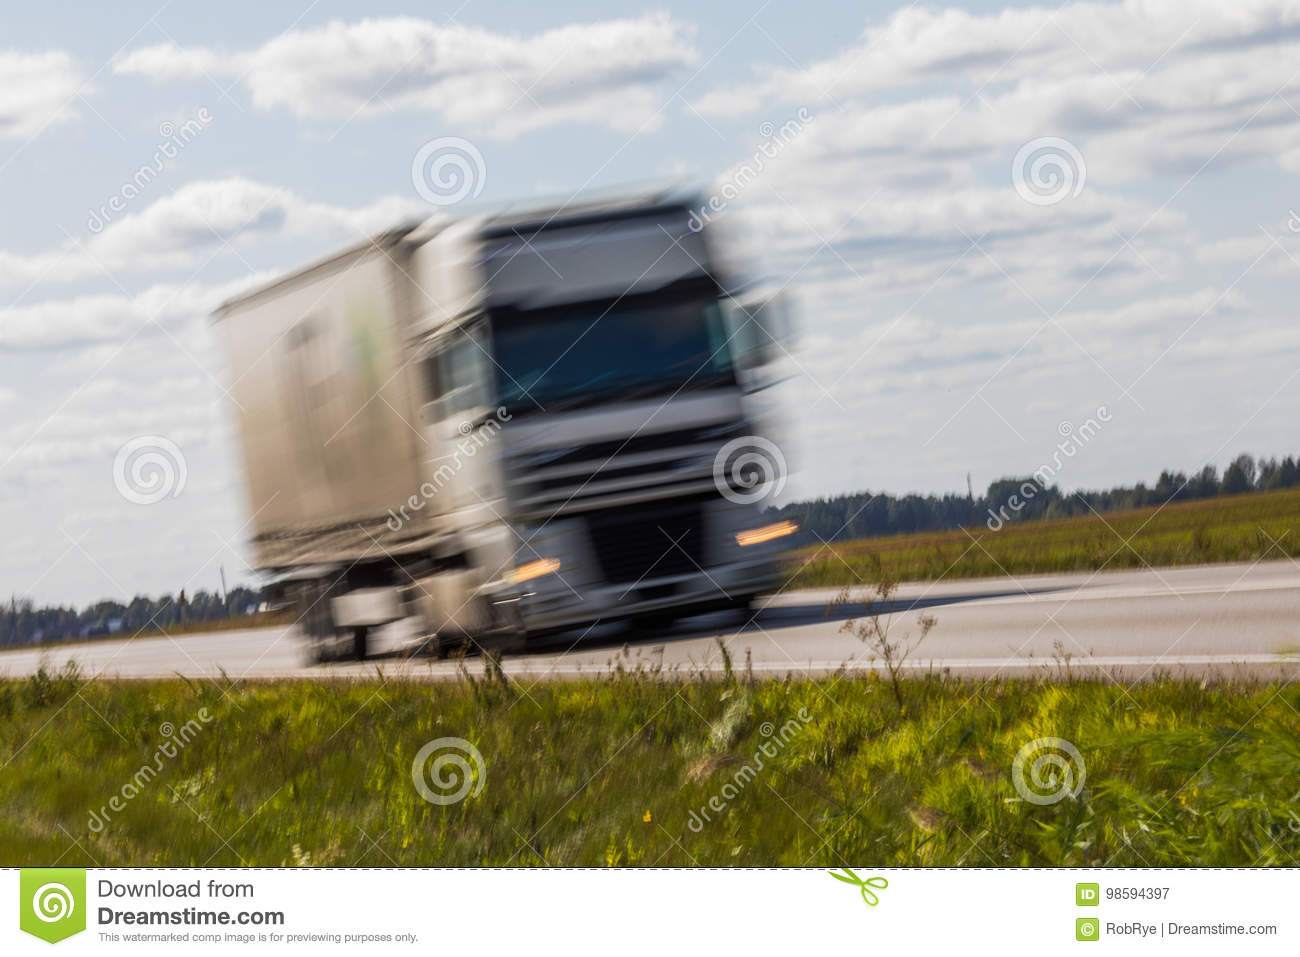 Truck Transport On The Road With Motion Blur Blurred Image Background Colorful Wallpaper Copy Space